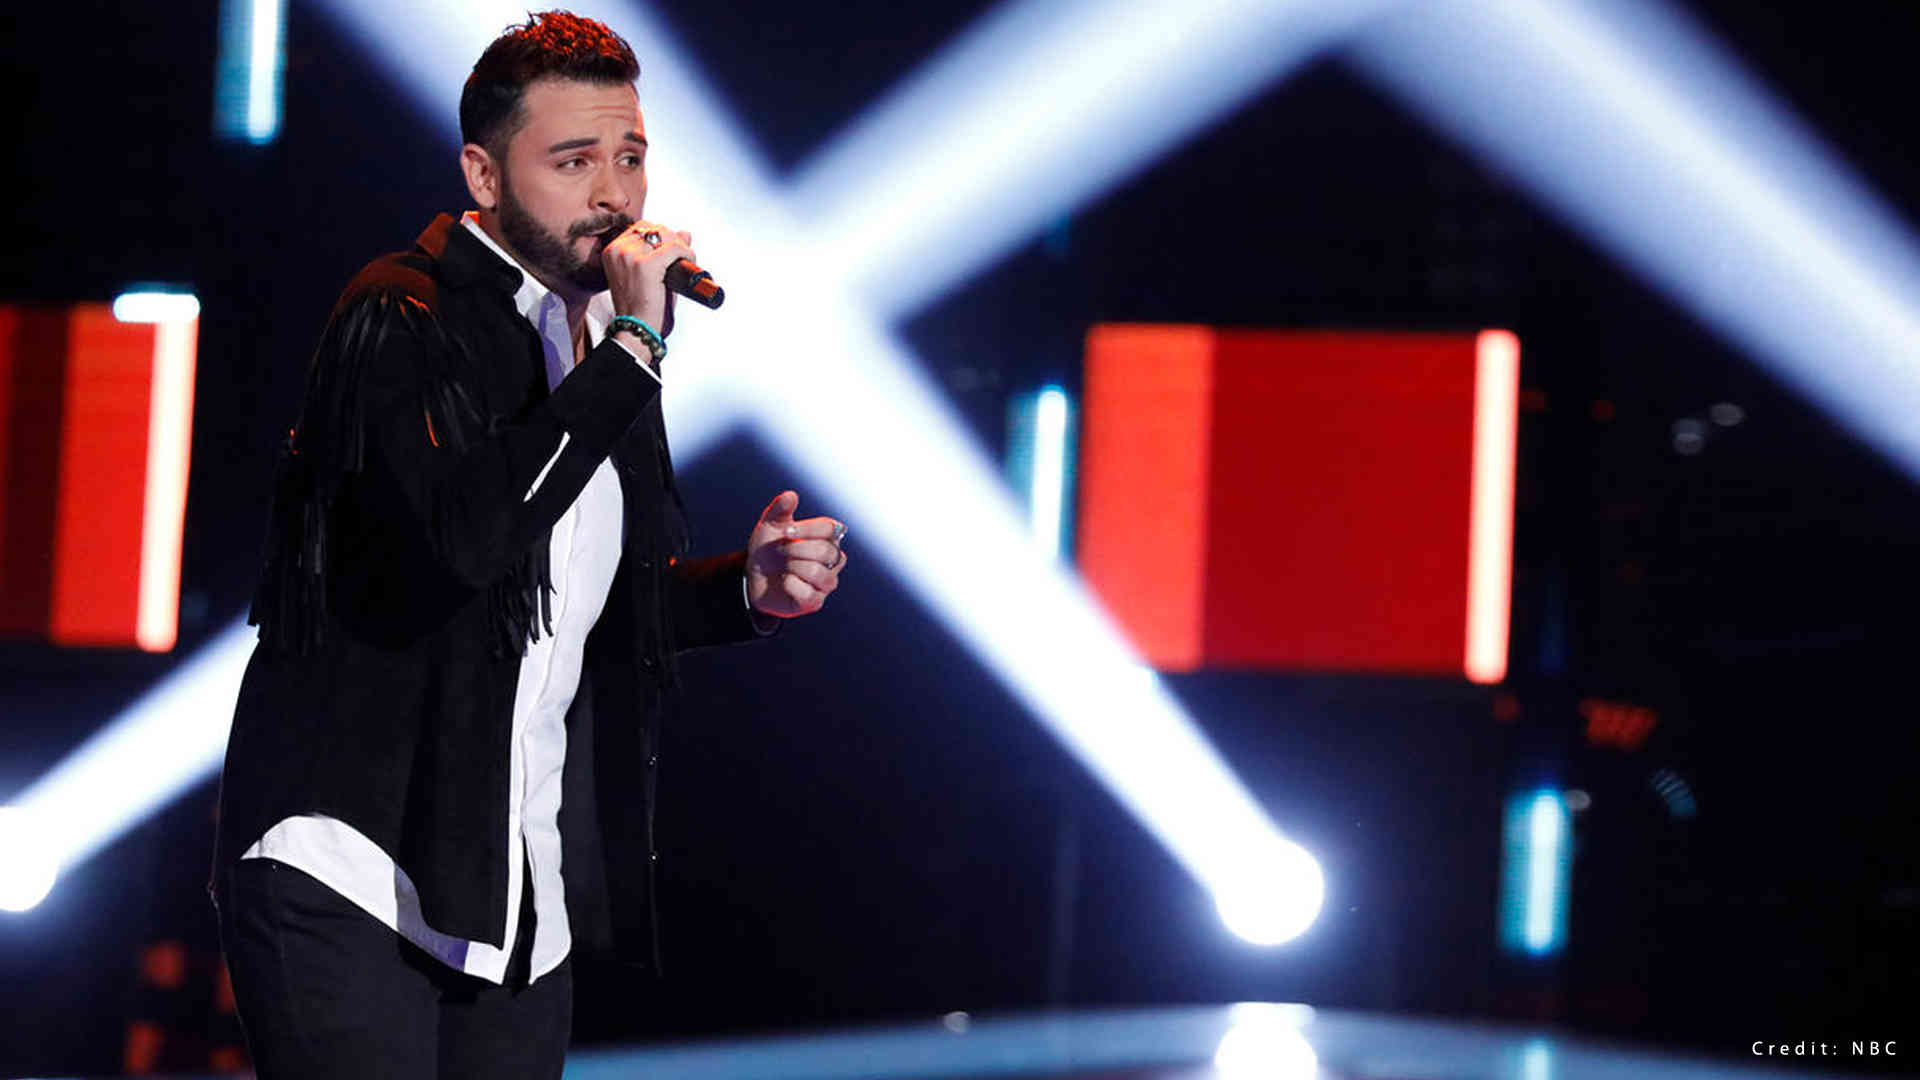 "Watch The Voice 2018 Blind Audition of Justin Kilgore ""Tomorrow"" in The Voice 2018 season 14 Blind Audition 26 February 2018"